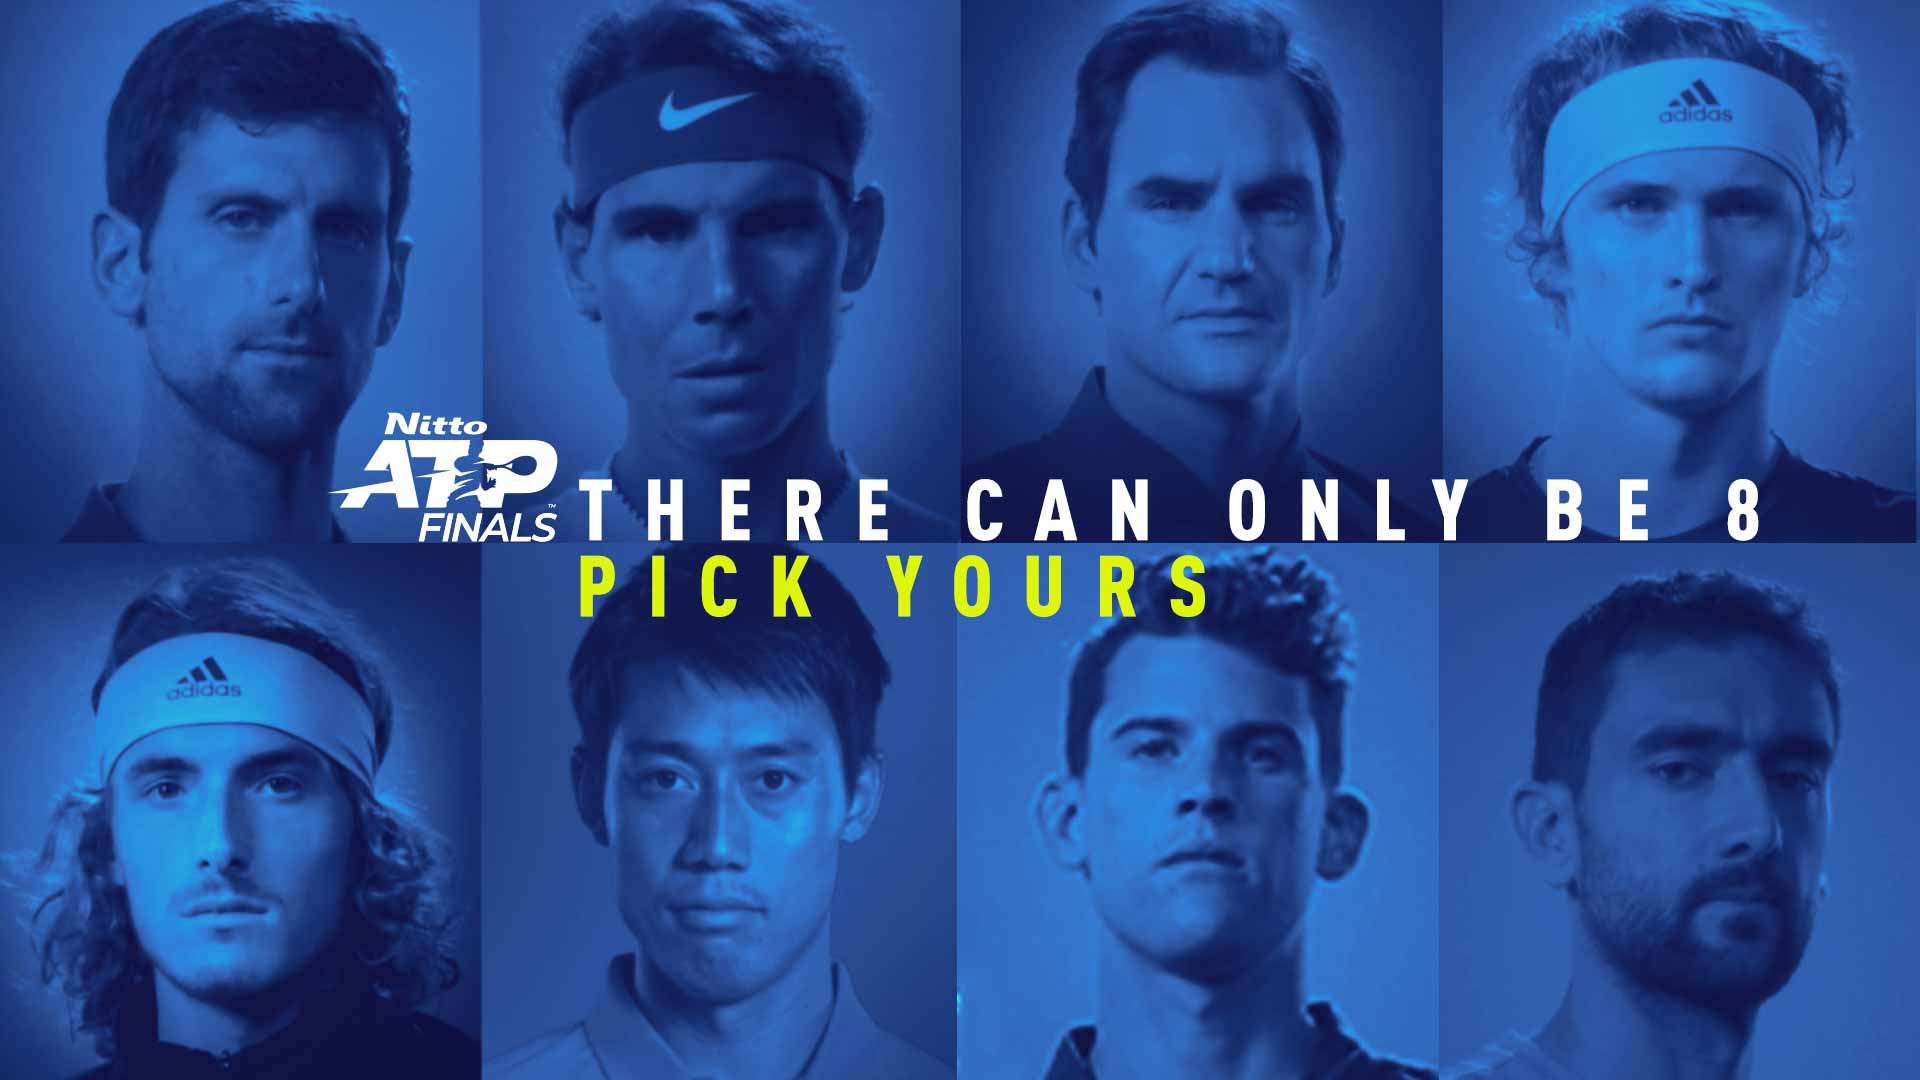 There can only be eight singles players at the Nitto ATP Finals? Pick your players.